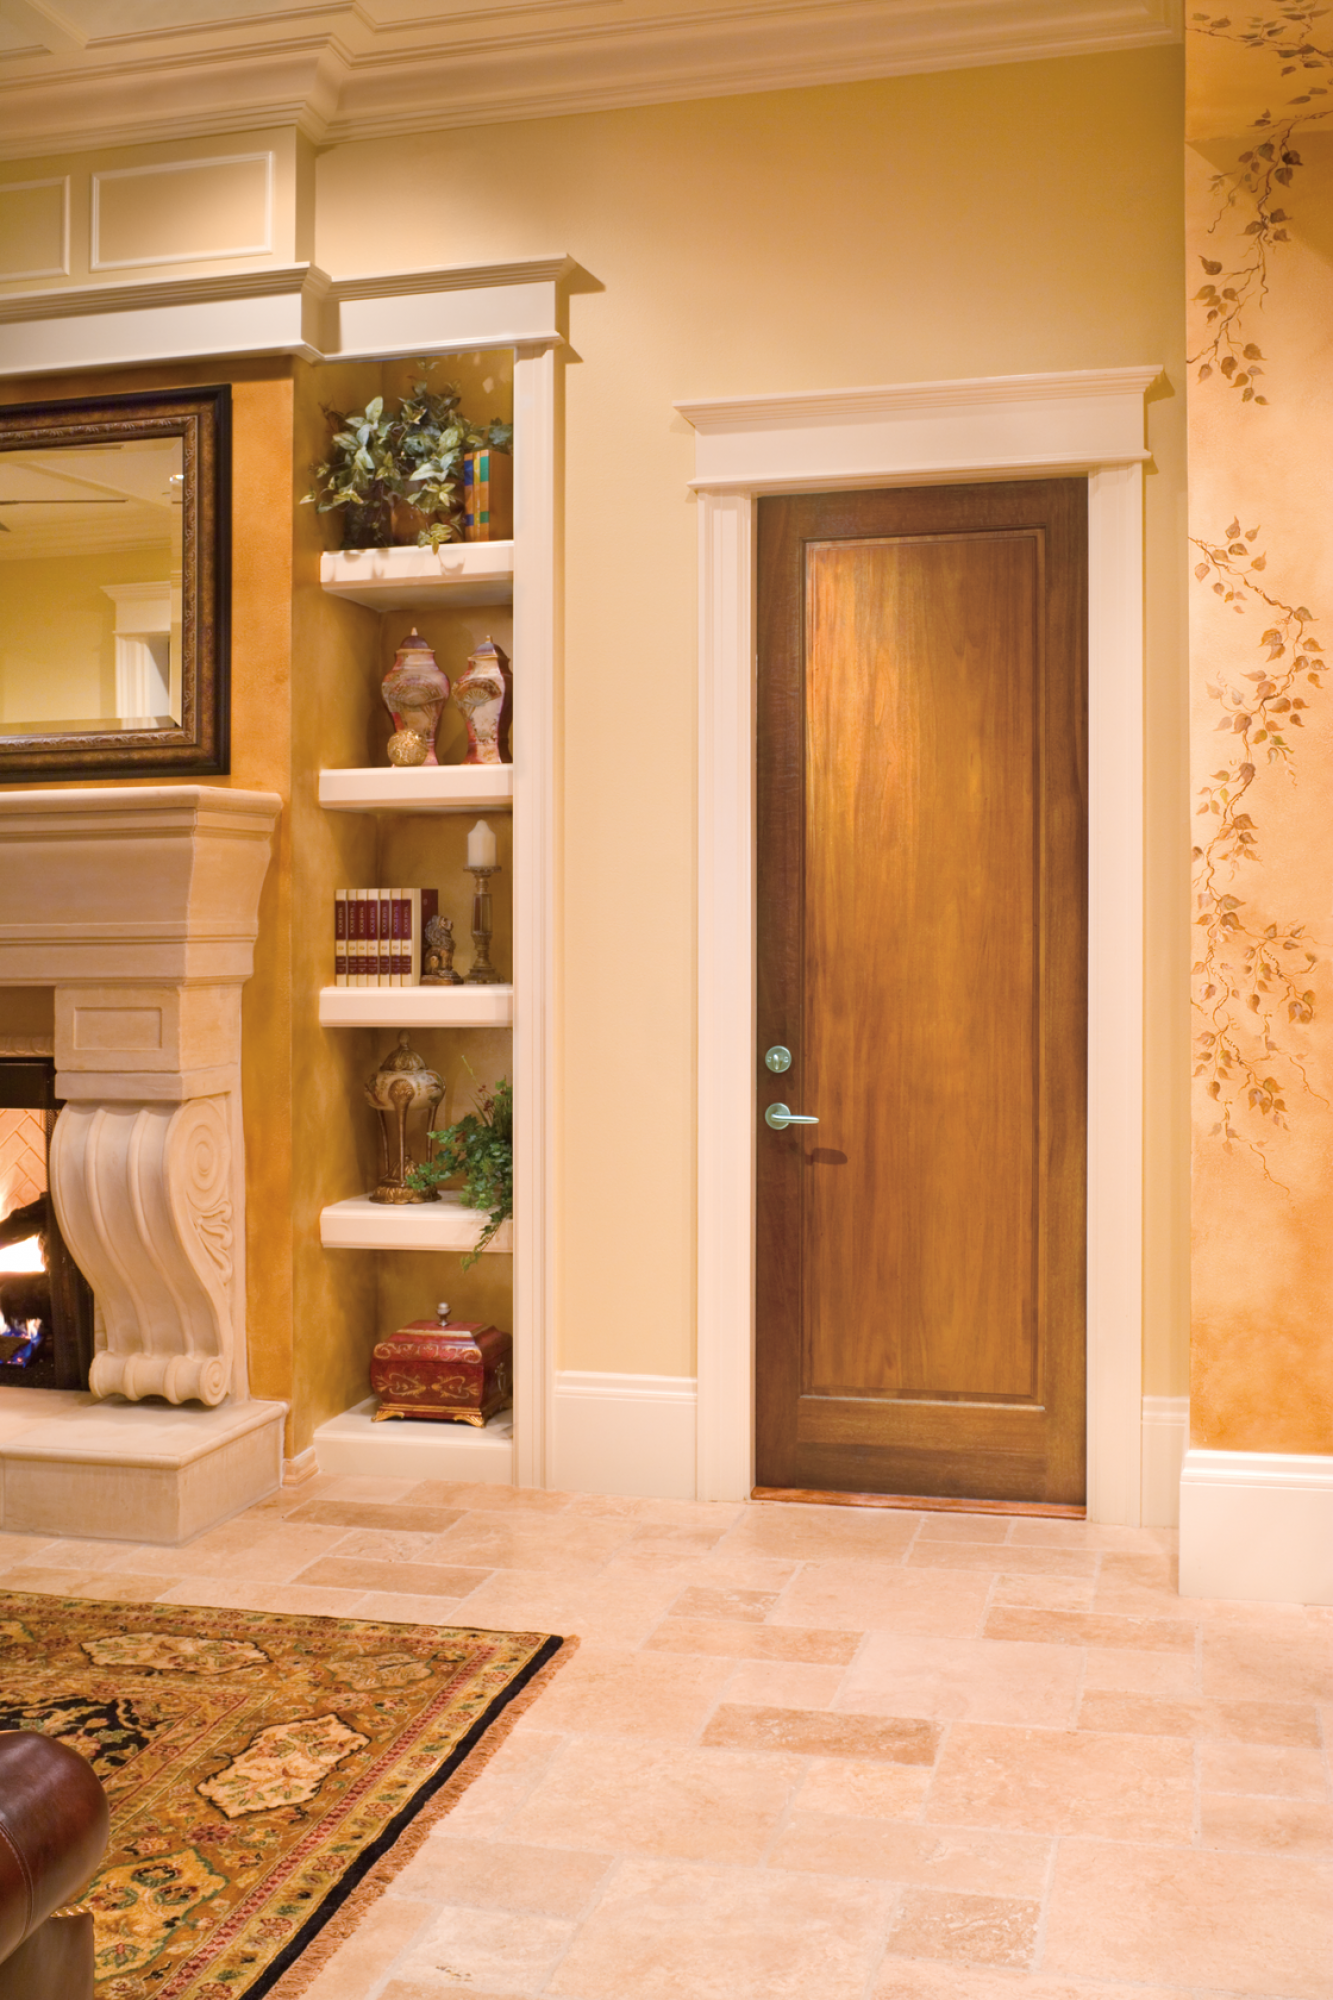 Custom wood all panel interior door jeld wen windows doors options planetlyrics Image collections